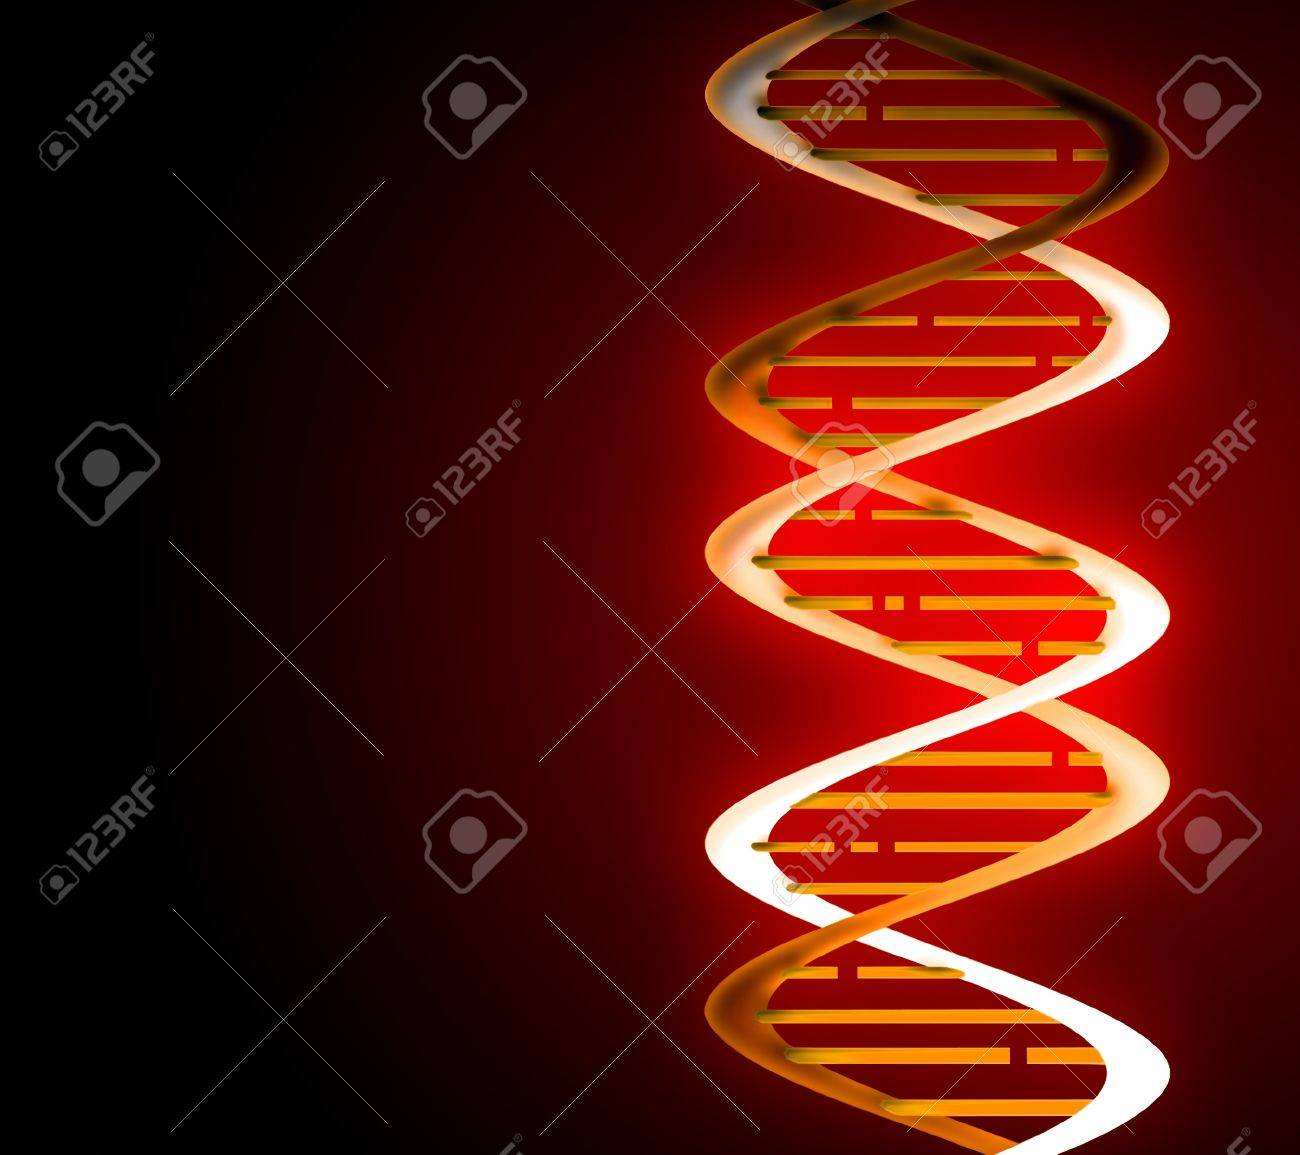 DNA strands on abstract medical background Stock Photo - 11142401